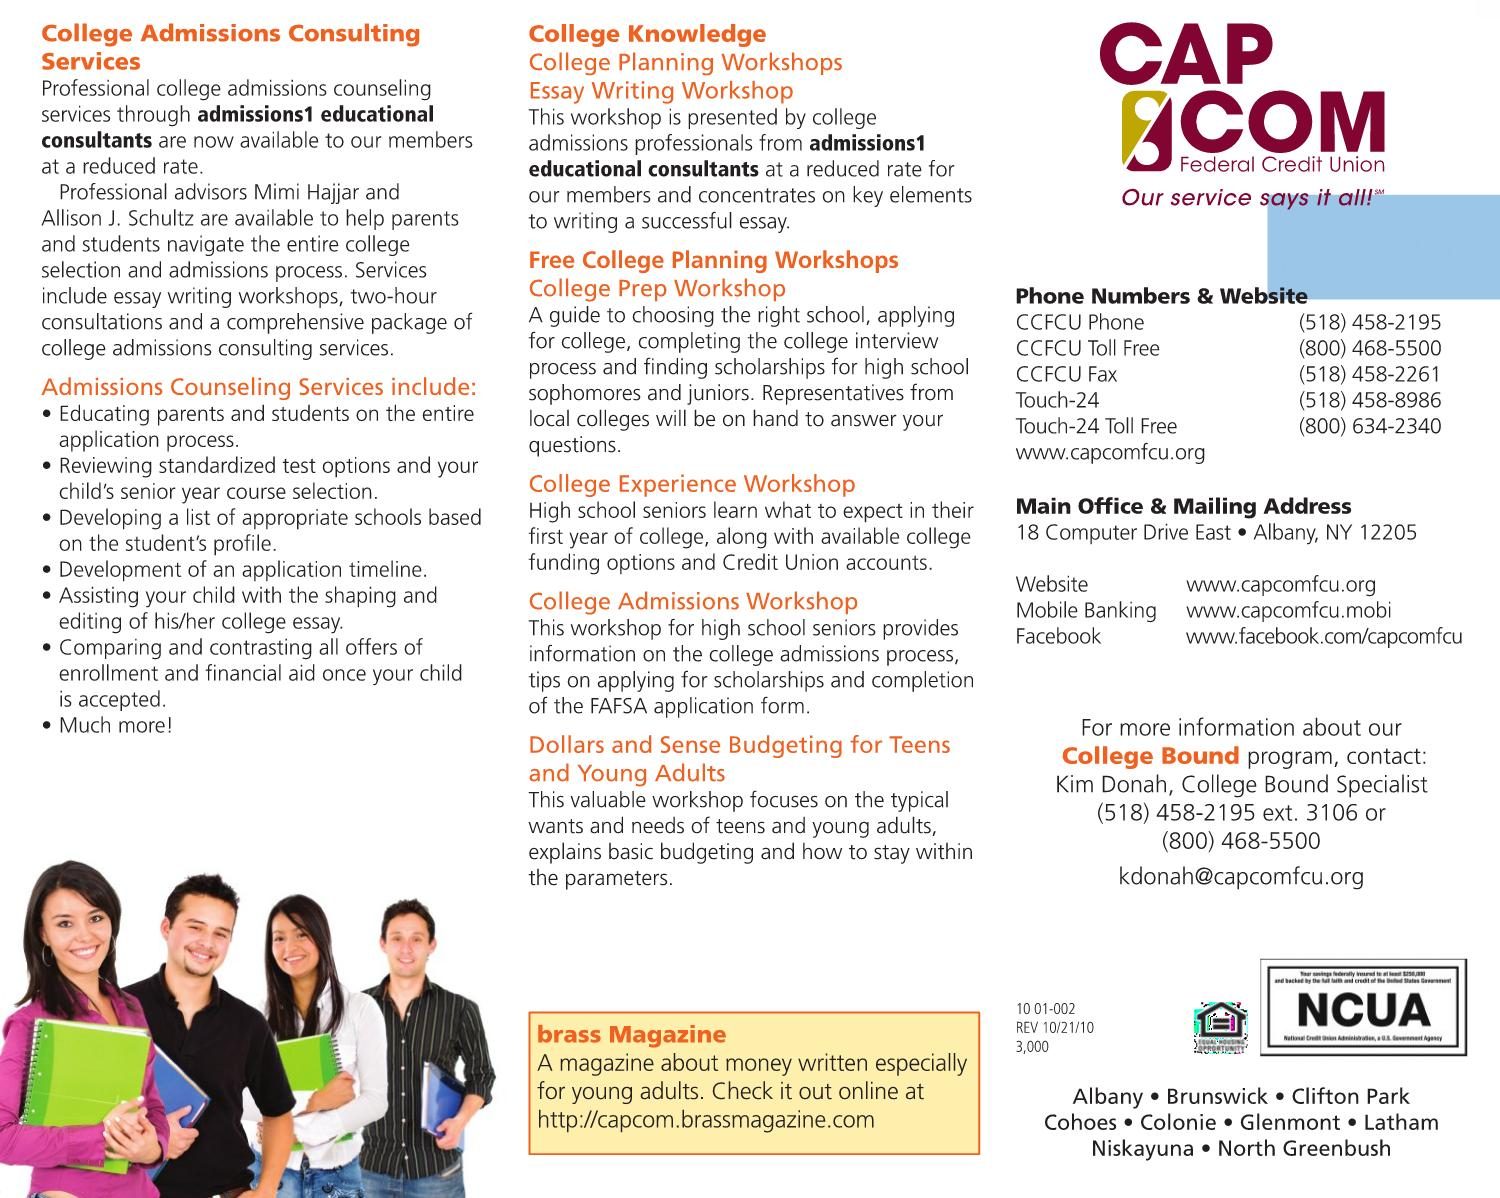 College Bound Brochure by CAP COM Federal Credit Union - issuu